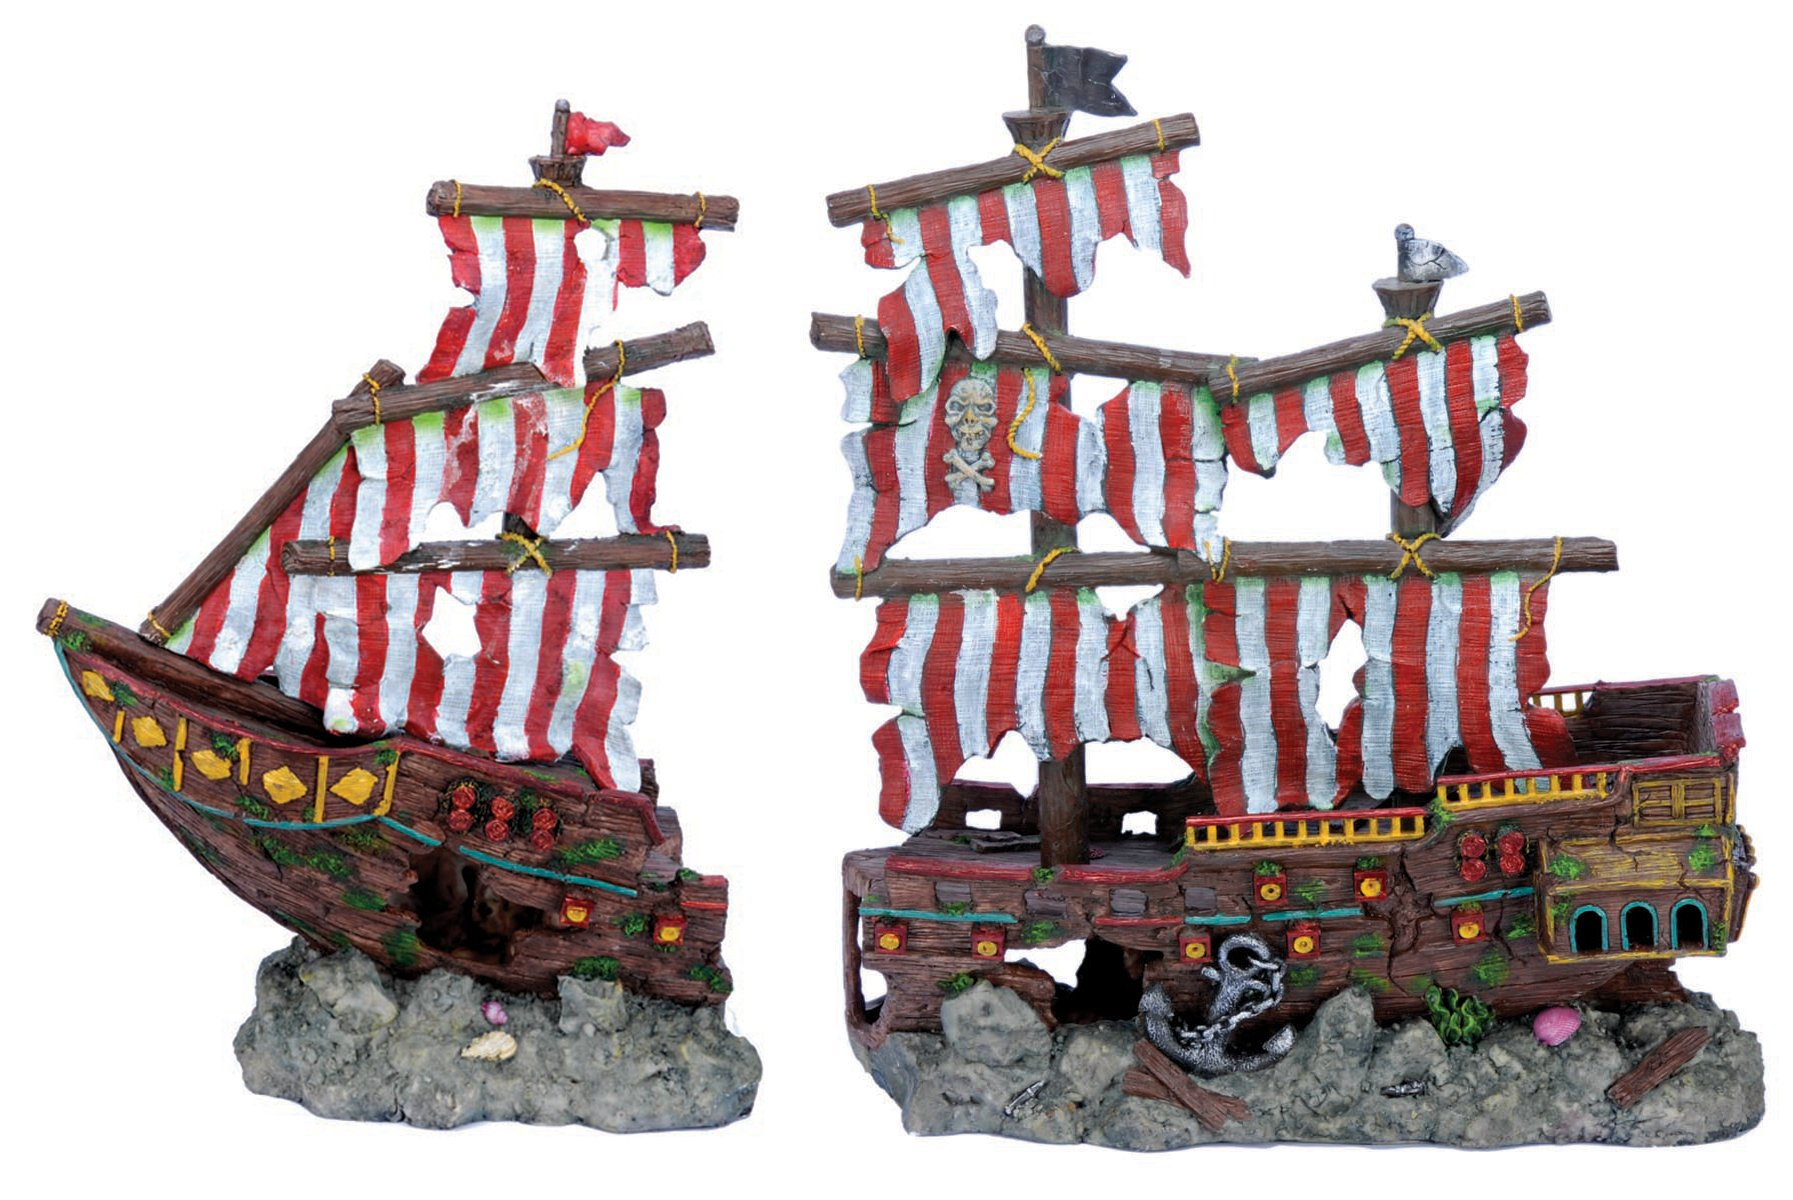 Penn Plax Striped Sail Shipwreck Aquarium Decoration 2PC Large Over 19 Inches High for Large Fish Tanks by Penn Plax